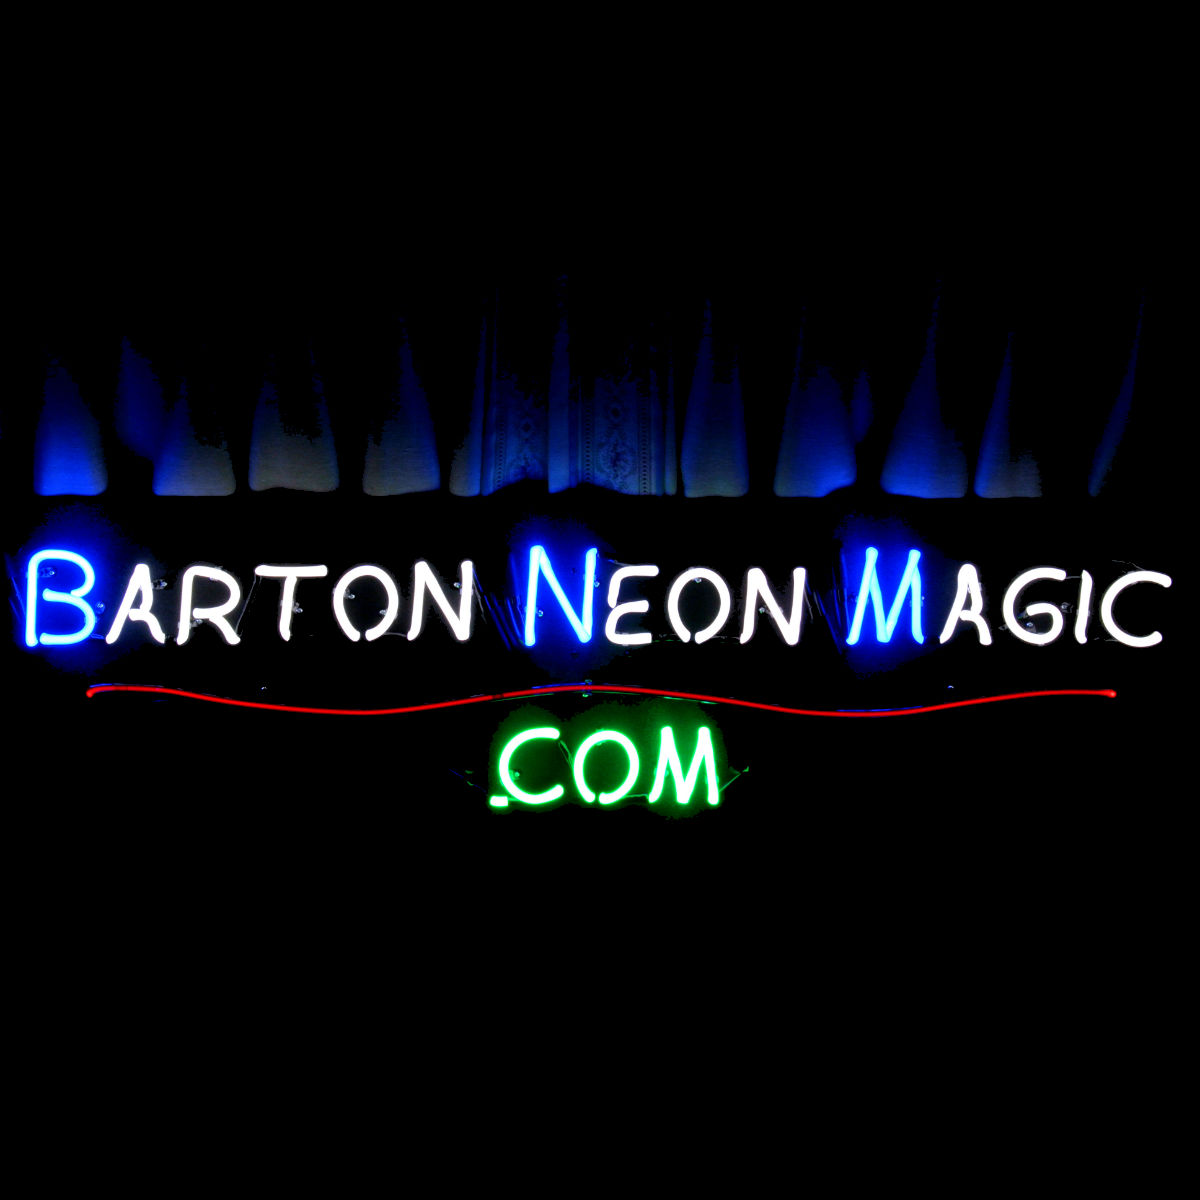 Custom Neon Lighting by John Barton - Famous Neon Glass Artist - BartonNeonMagic.com